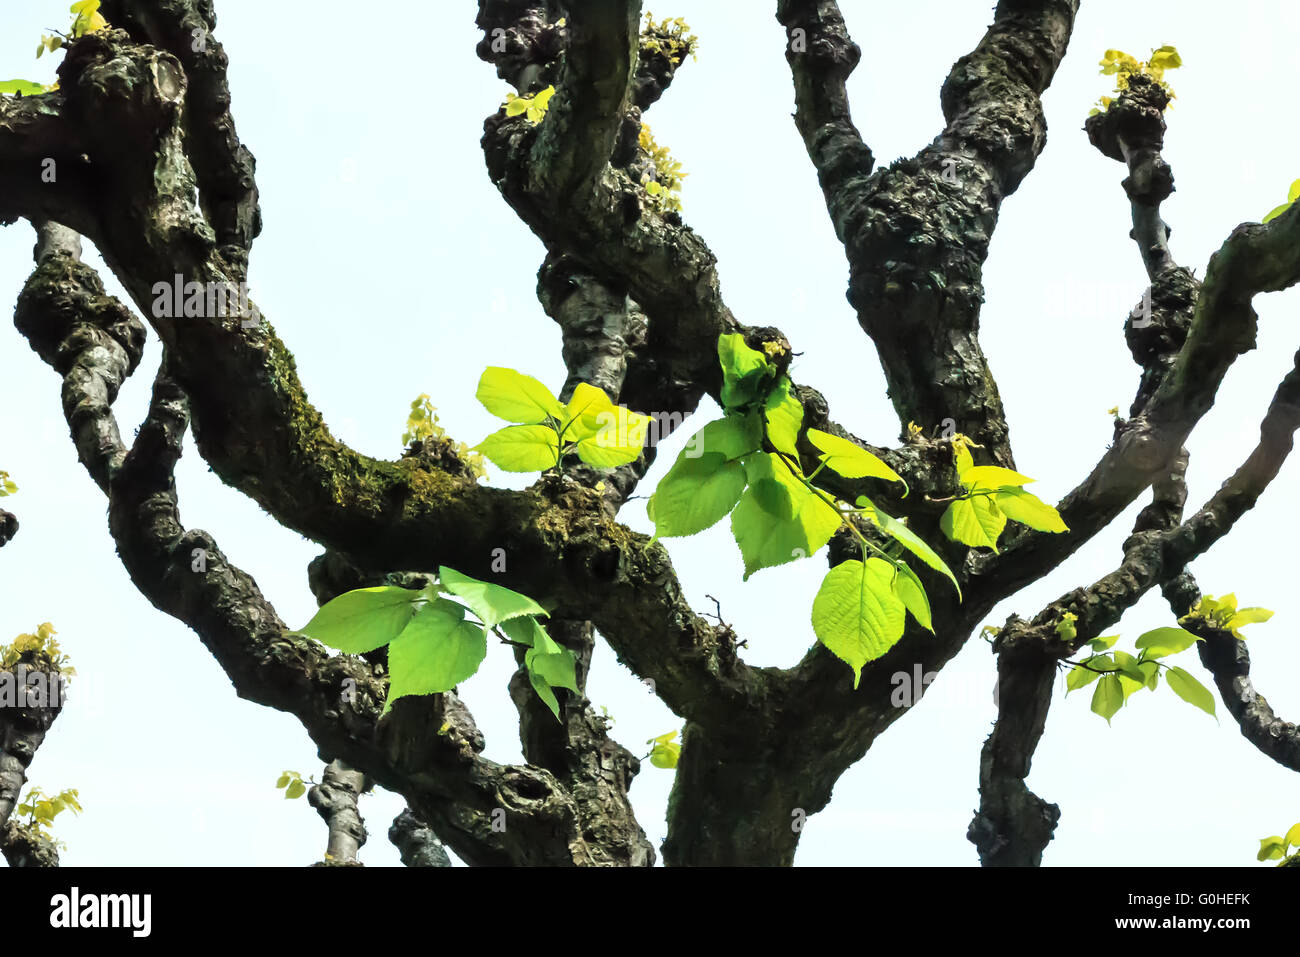 Linden-tree leaves (Tilia platyphyllos) in early spring Stock Photo